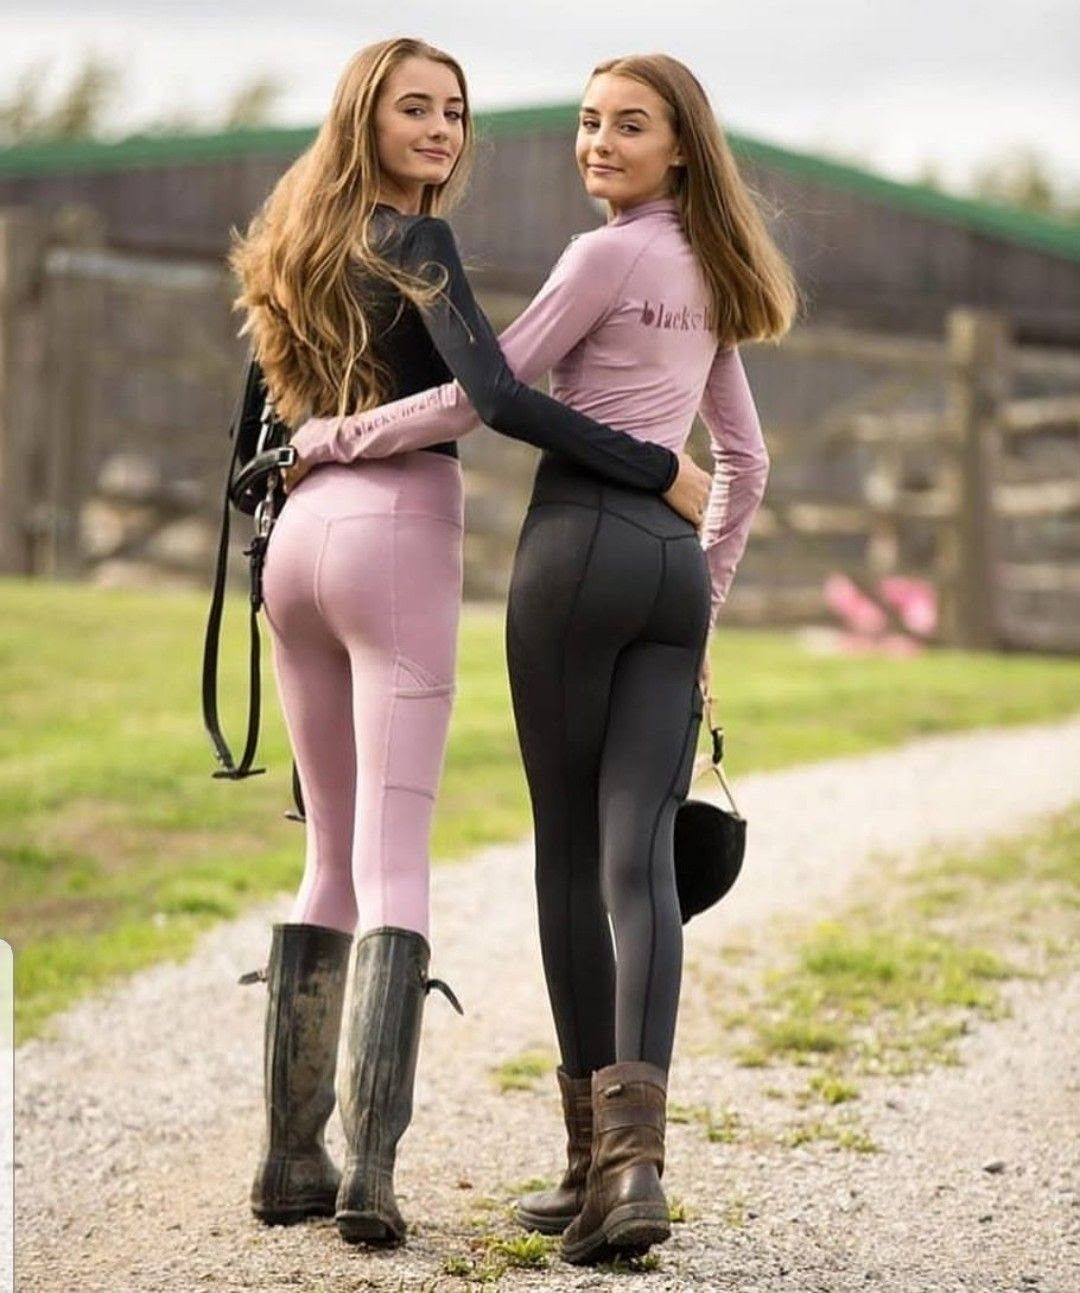 Hot College Blonde Riding Me